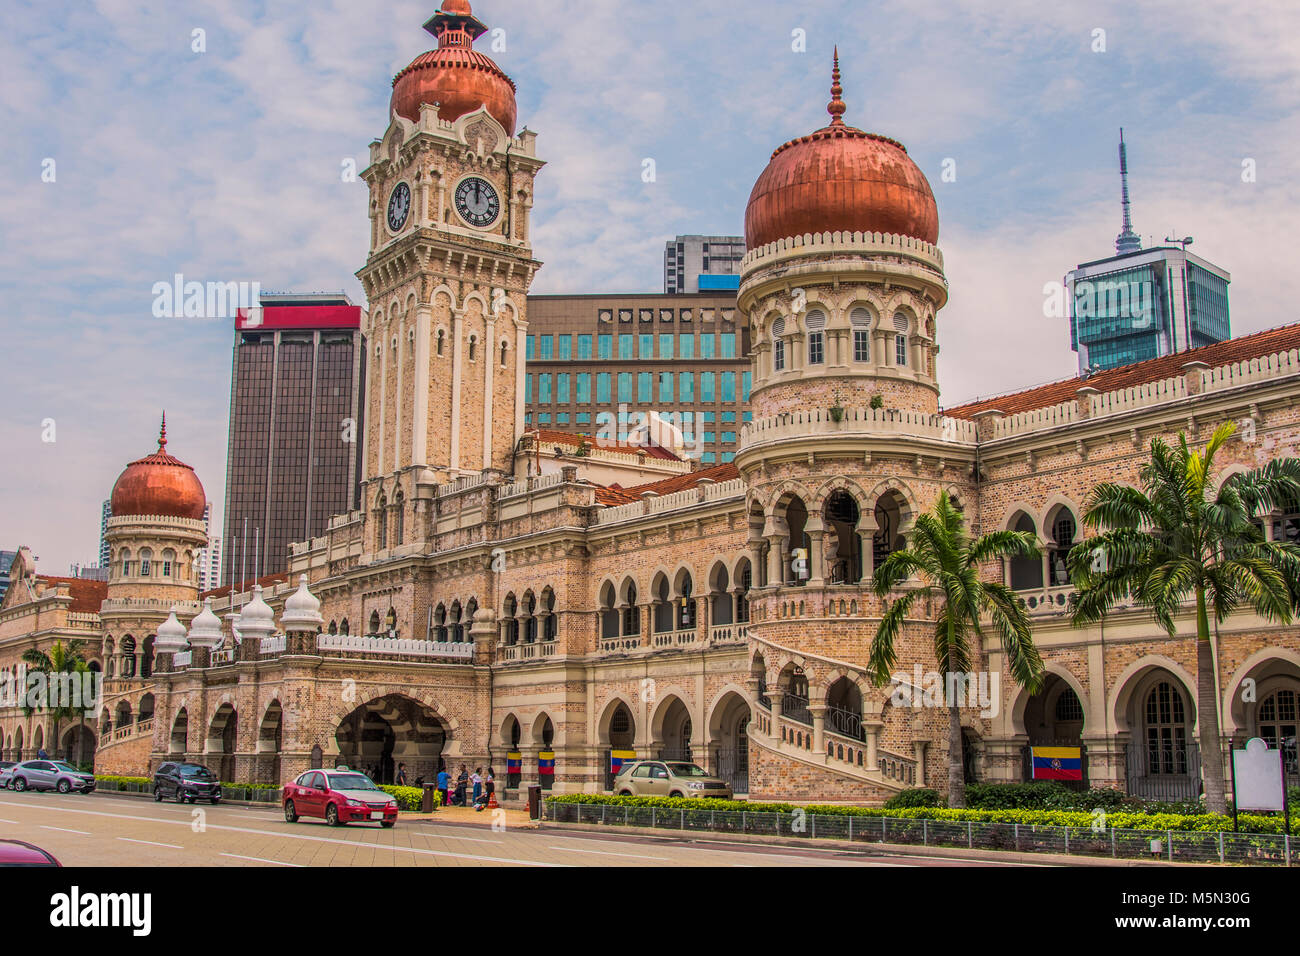 Sultan Abdul Samad Building In Independence Square Kuala Lumpur Stock Photo Alamy